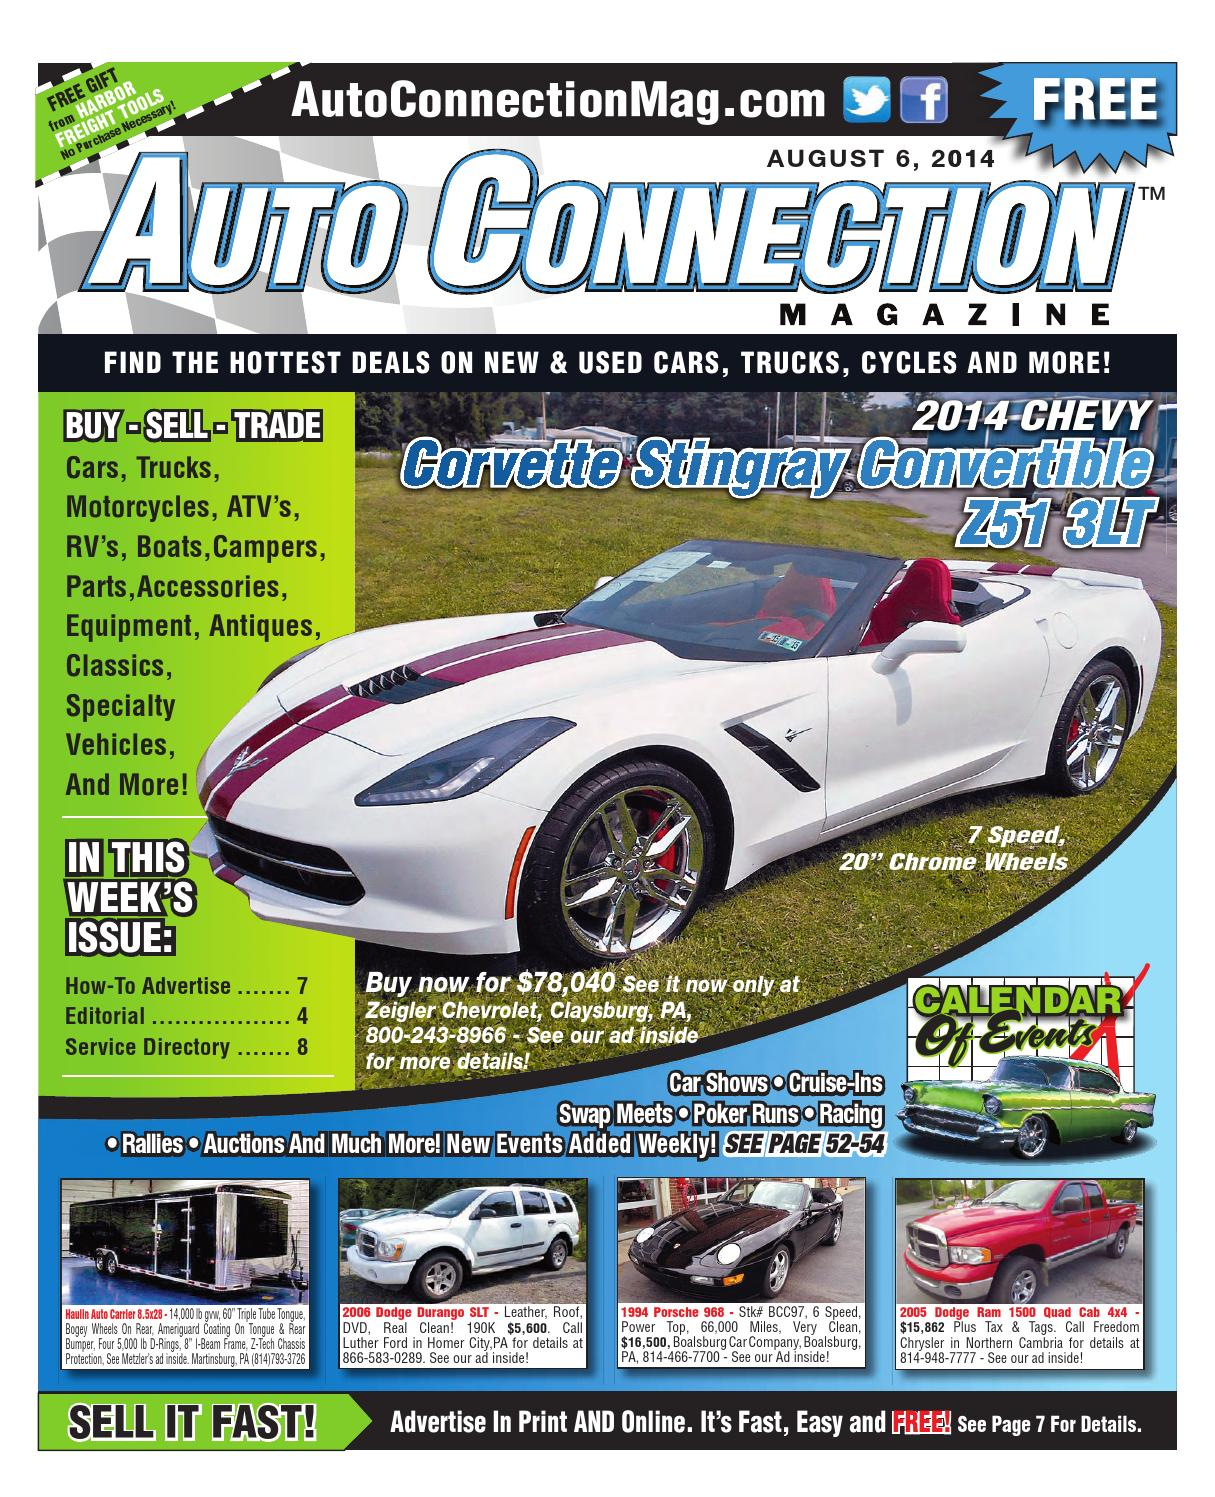 08 06 14 Auto Connection Magazine By Issuu 1980 Chevy Timing Cover Marks View